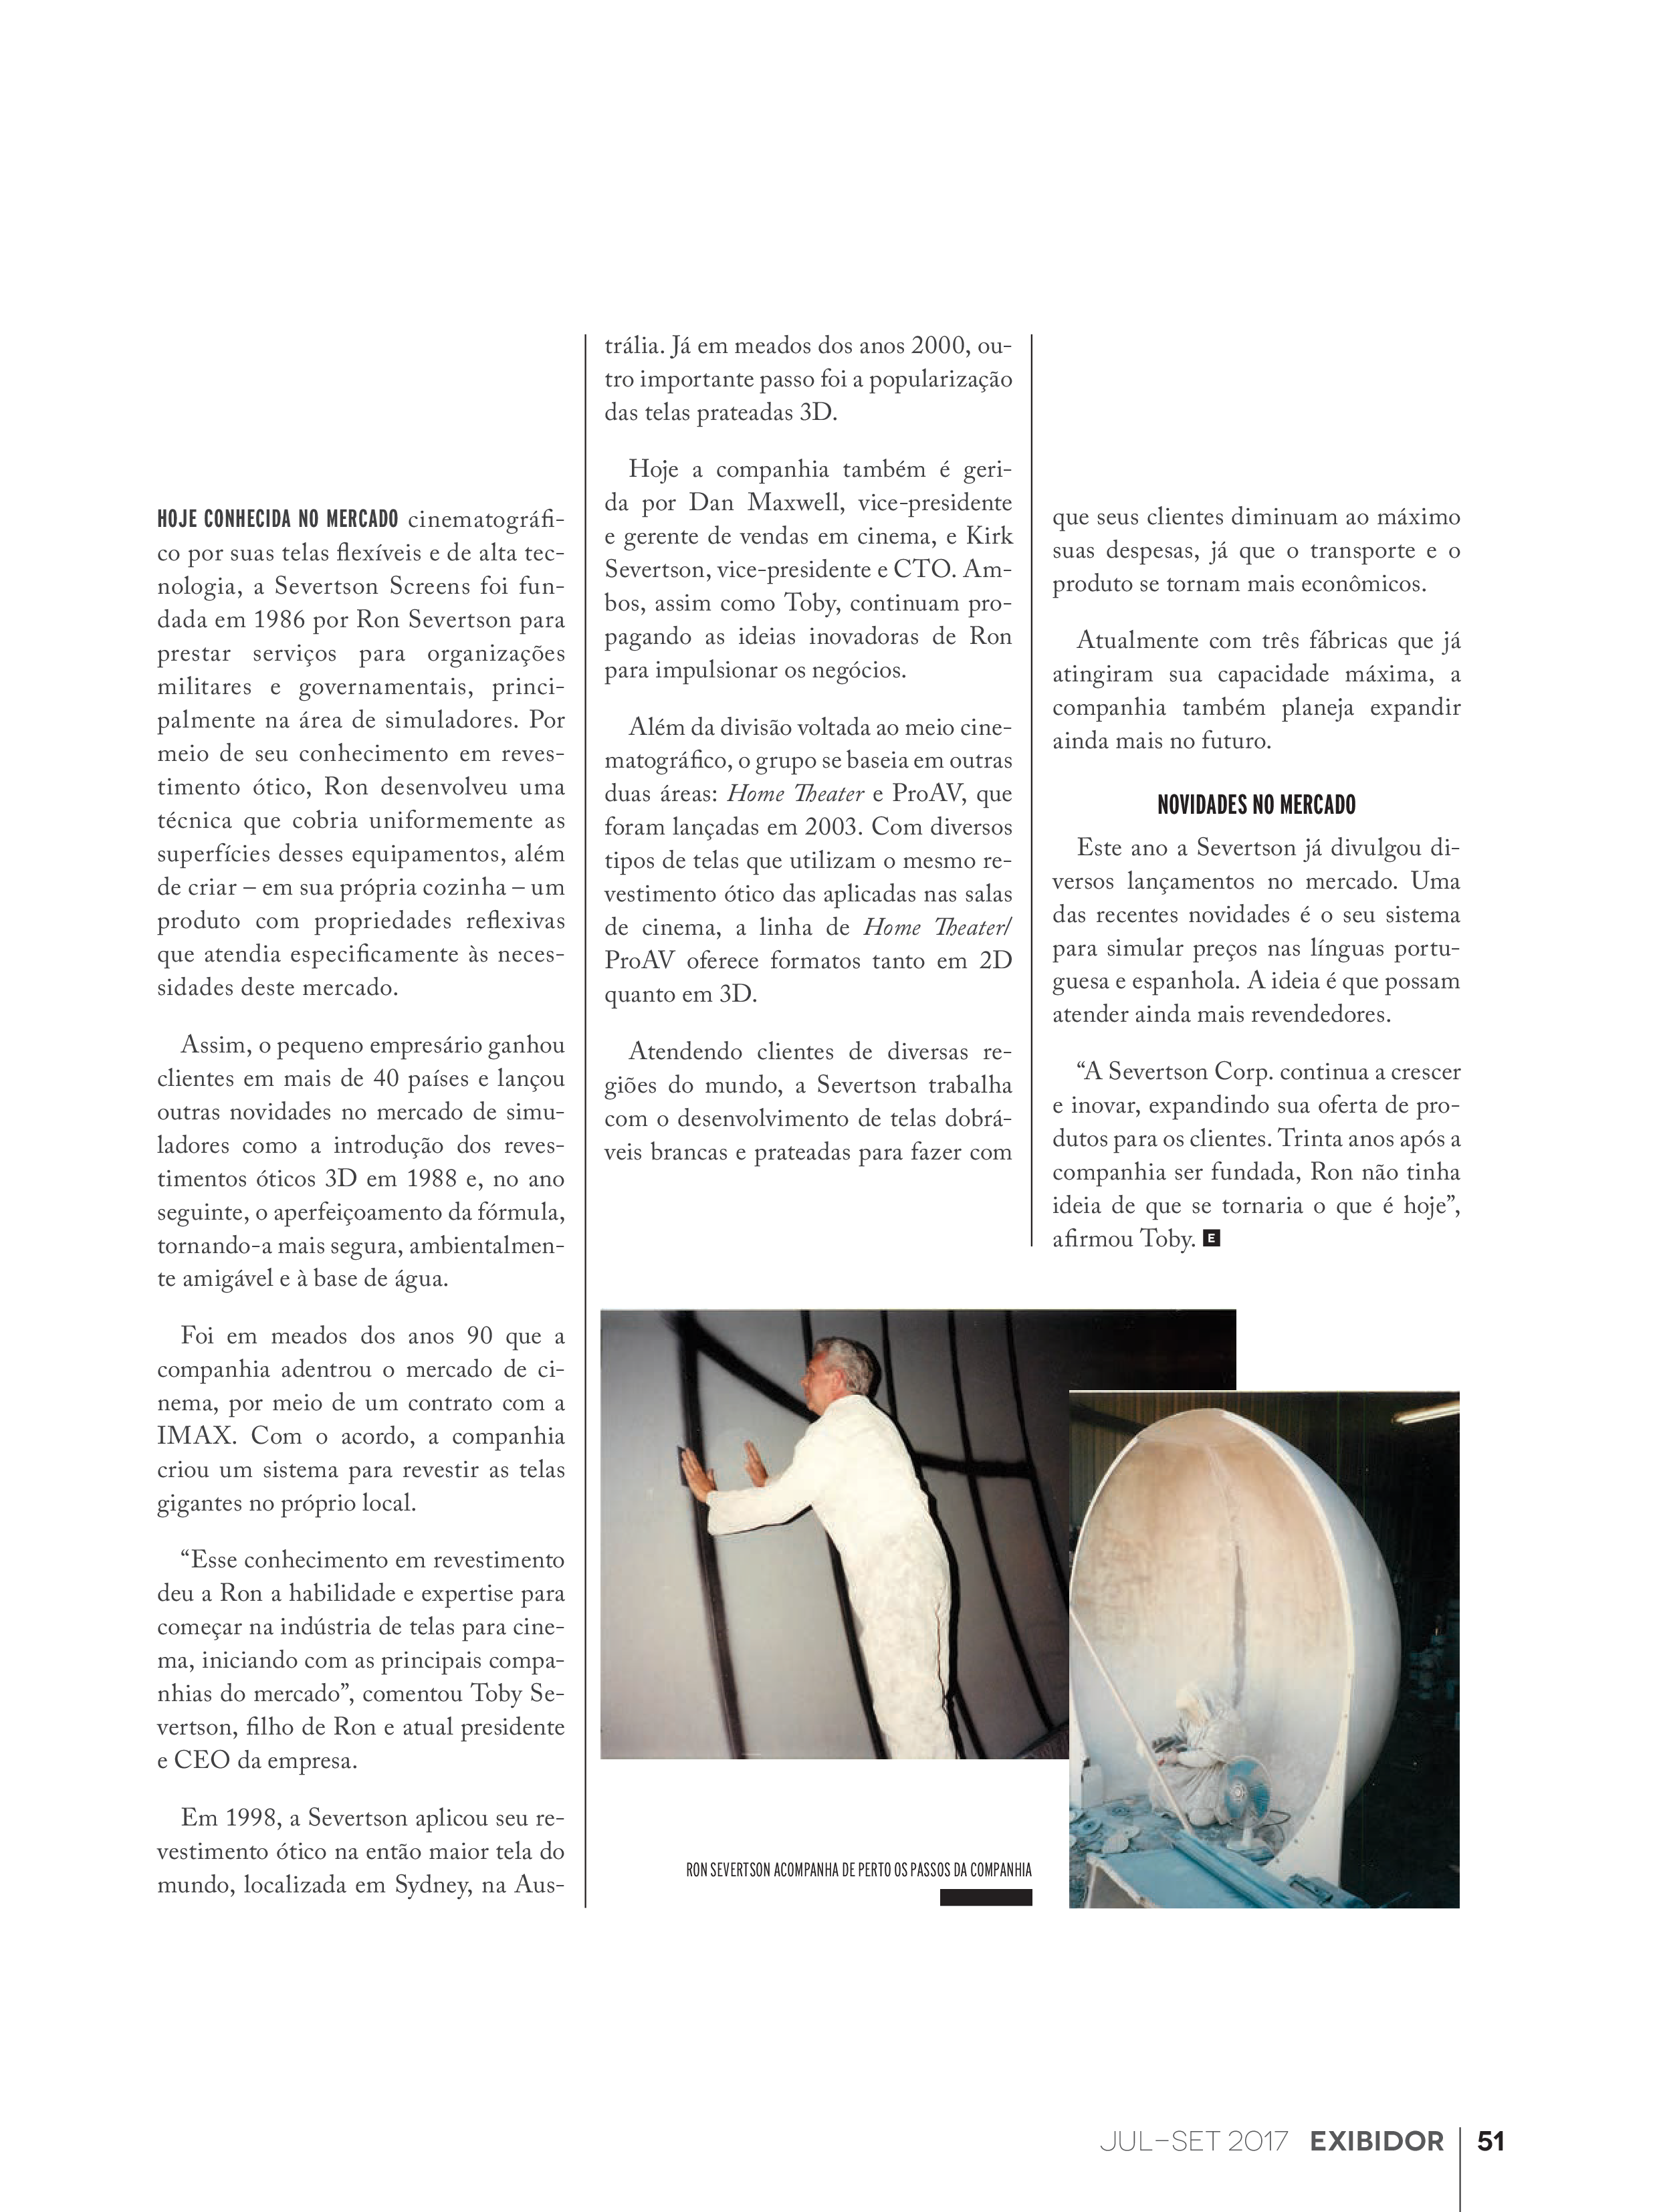 Article featuring Severtson Screens, from Exibidor magazine